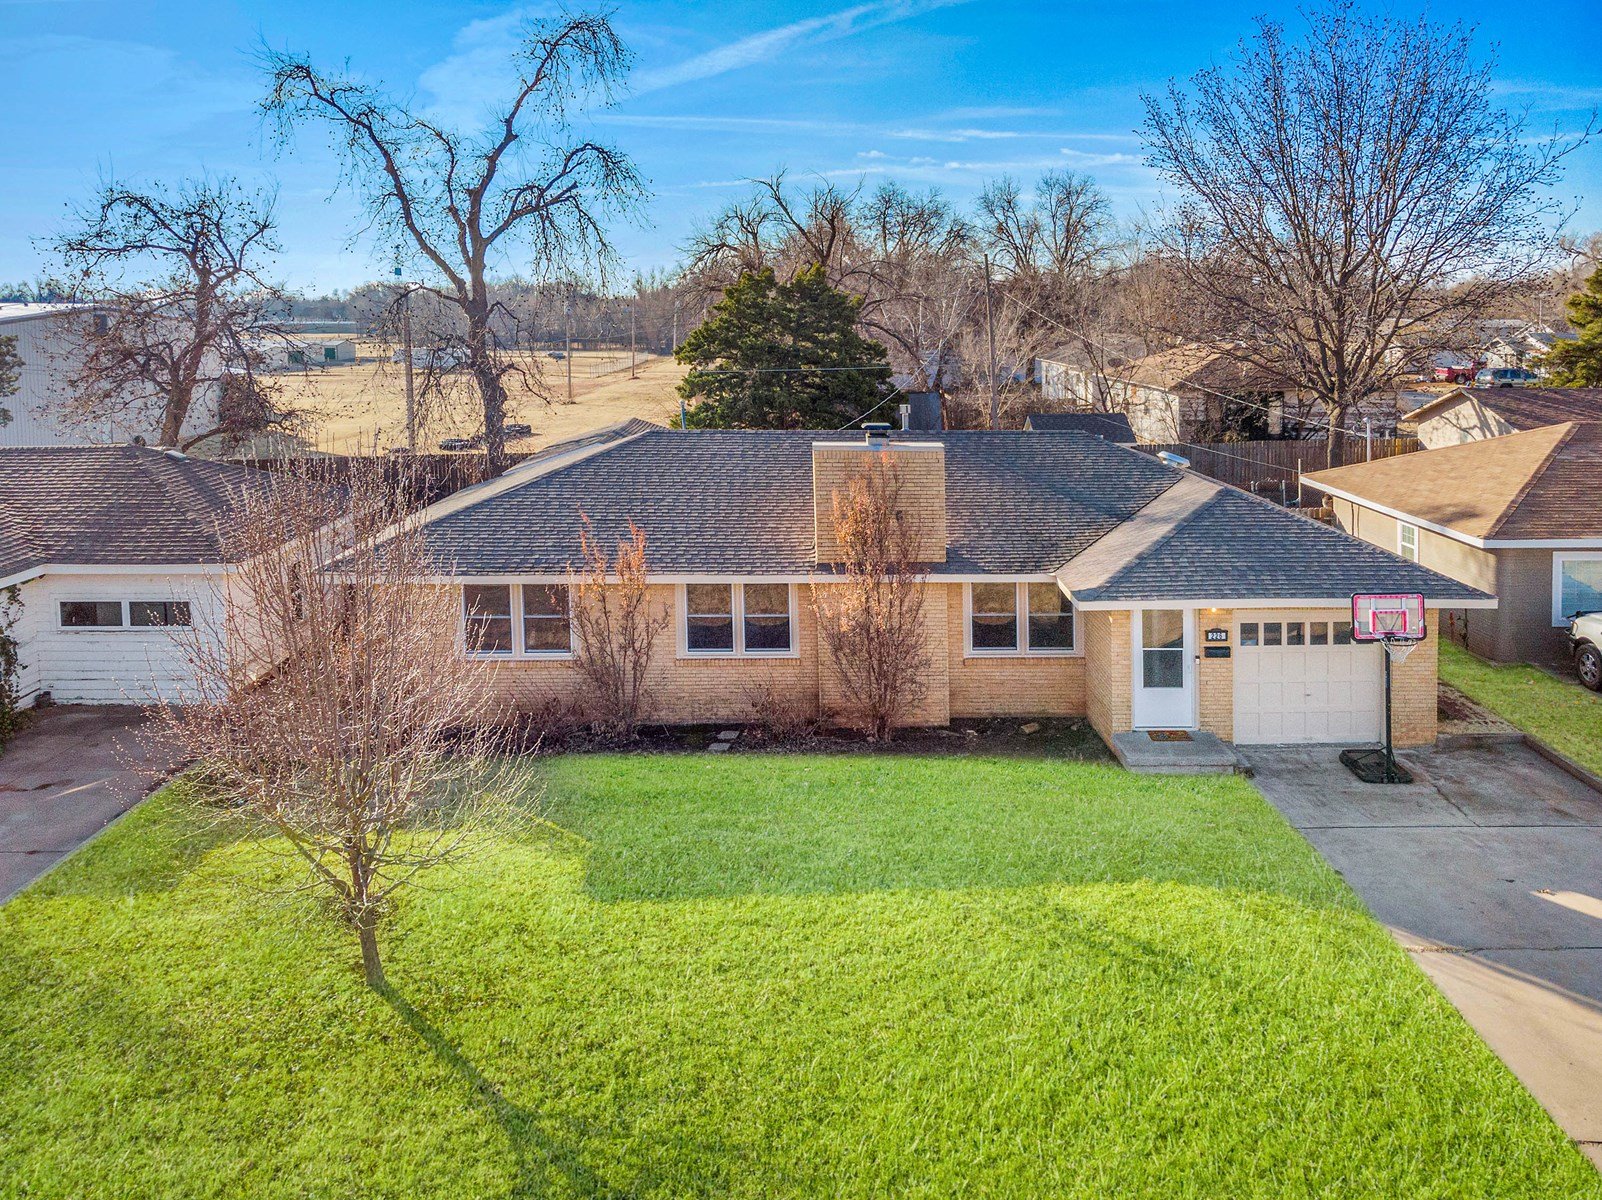 4 BED 2 BATH HOME FOR SALE IN ELK CITY